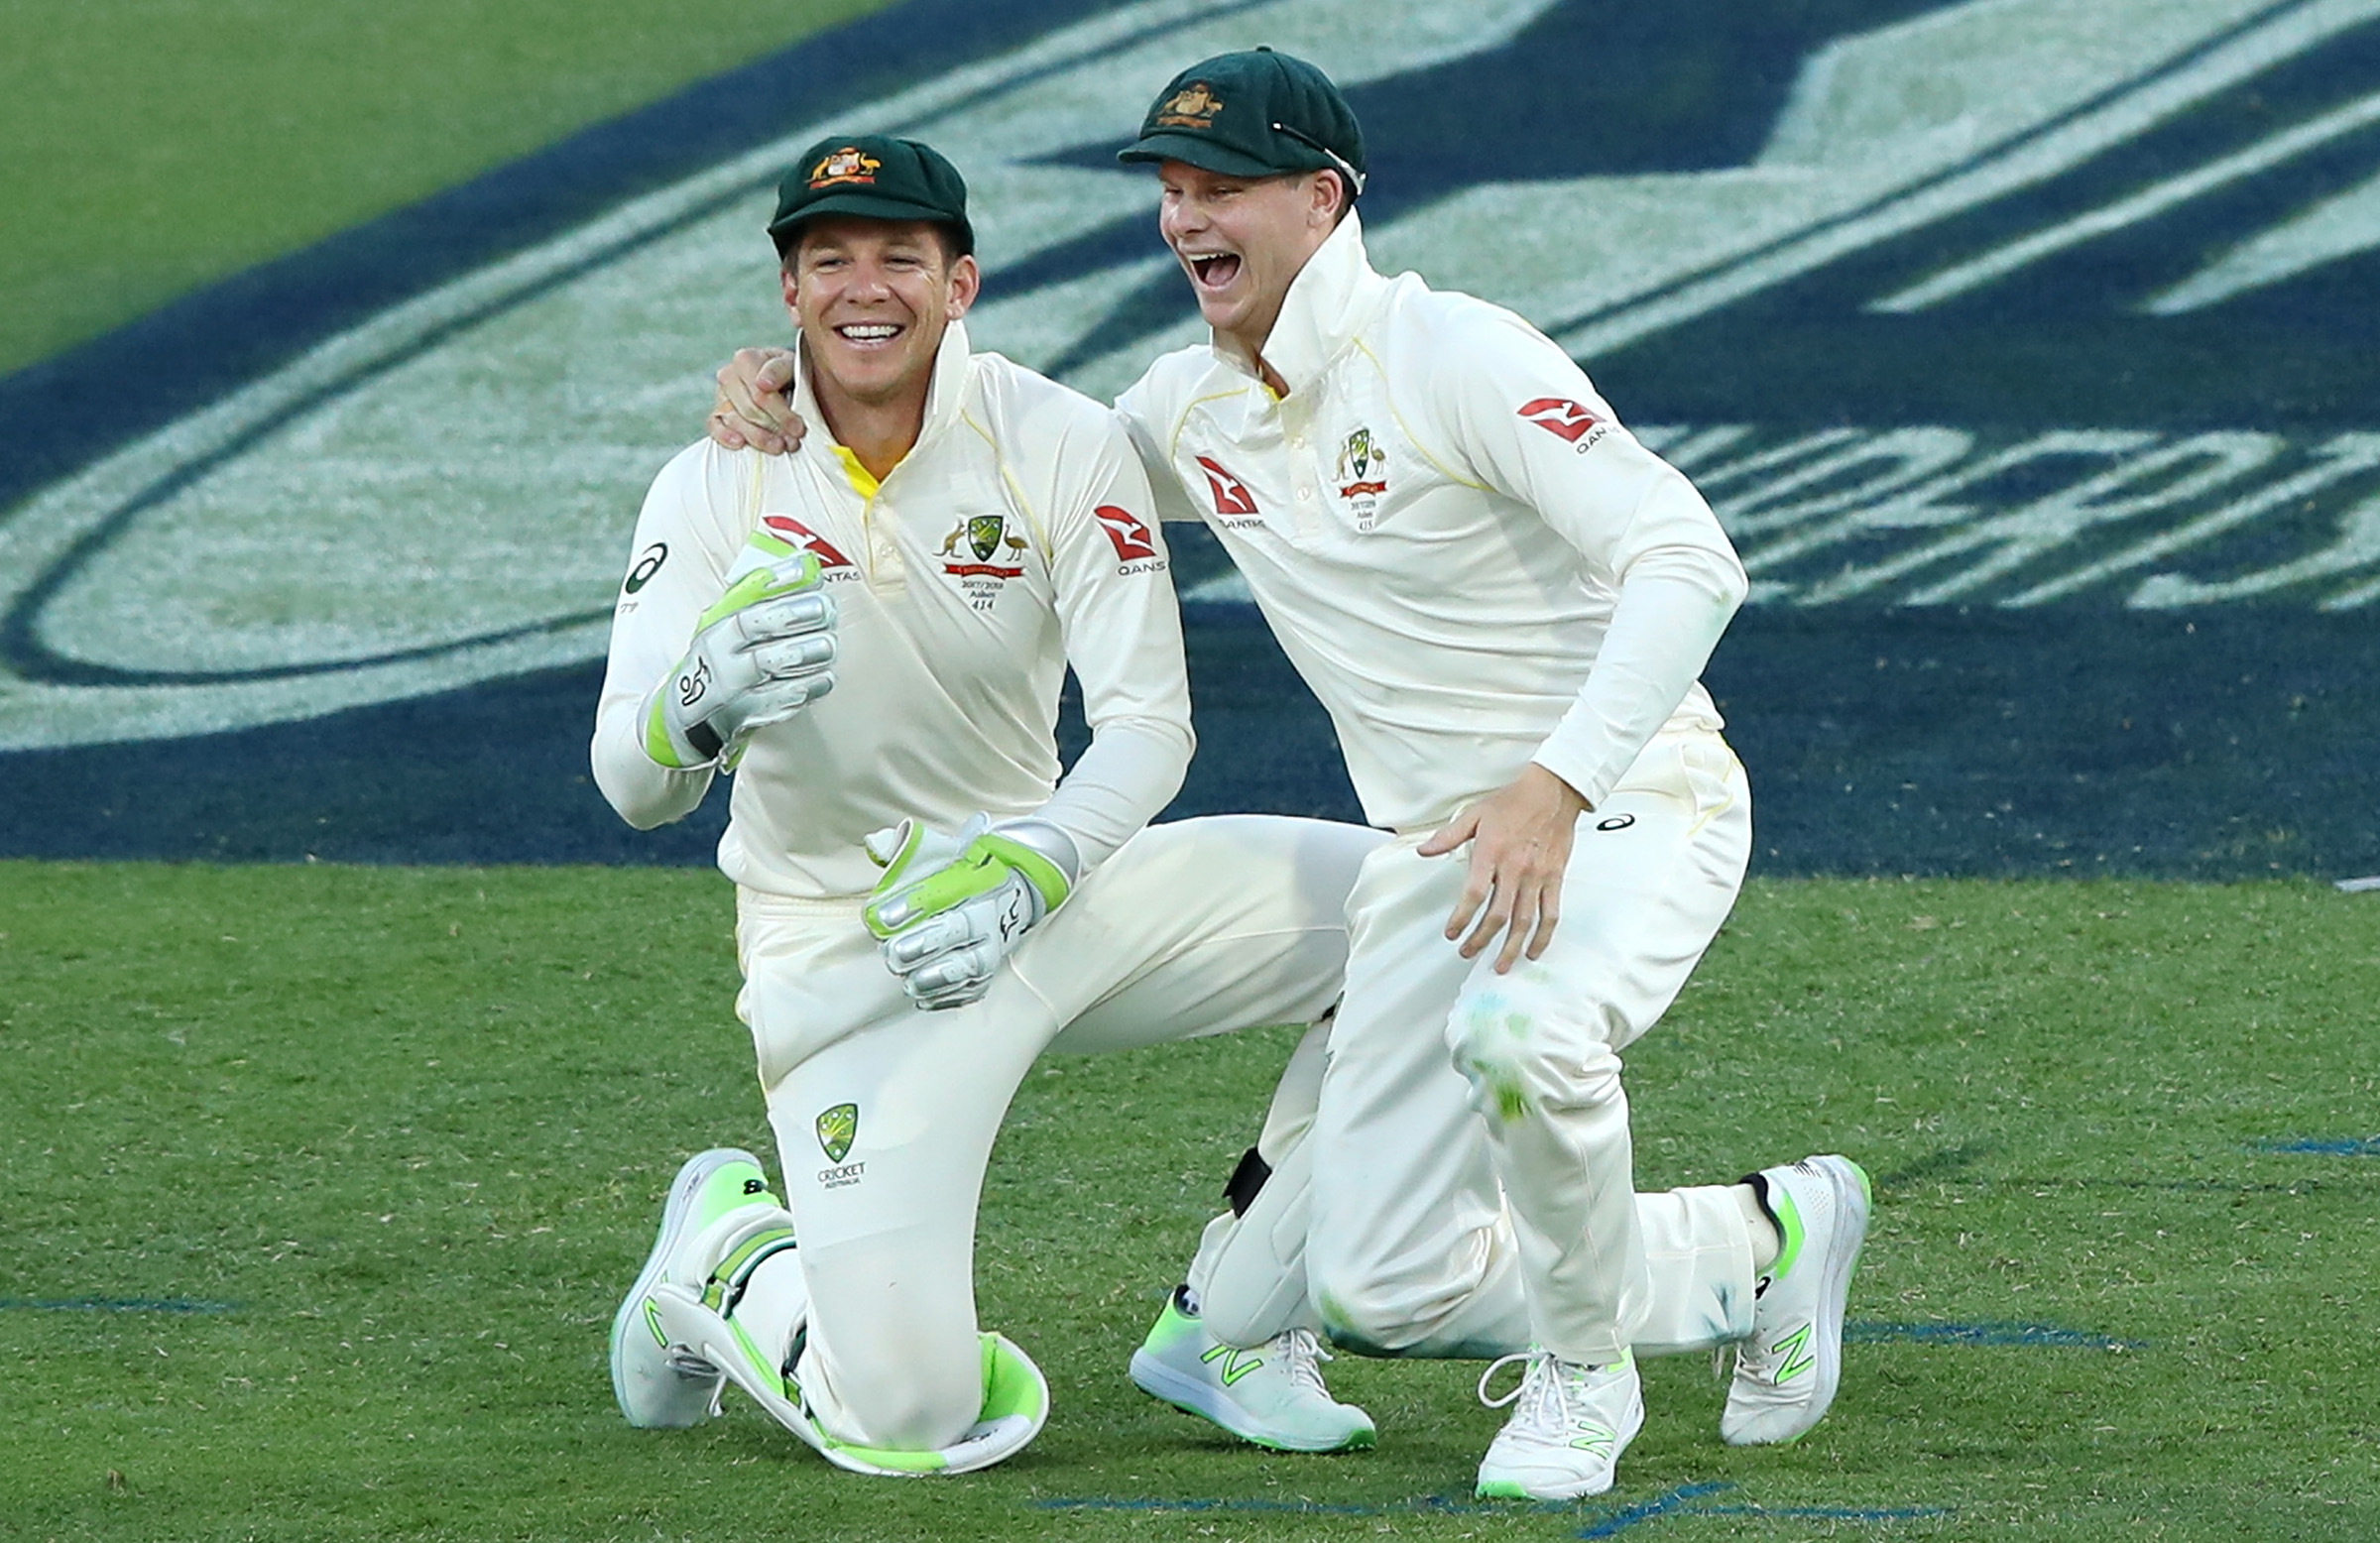 Paine and Smith in happier times during the Ashes // Getty